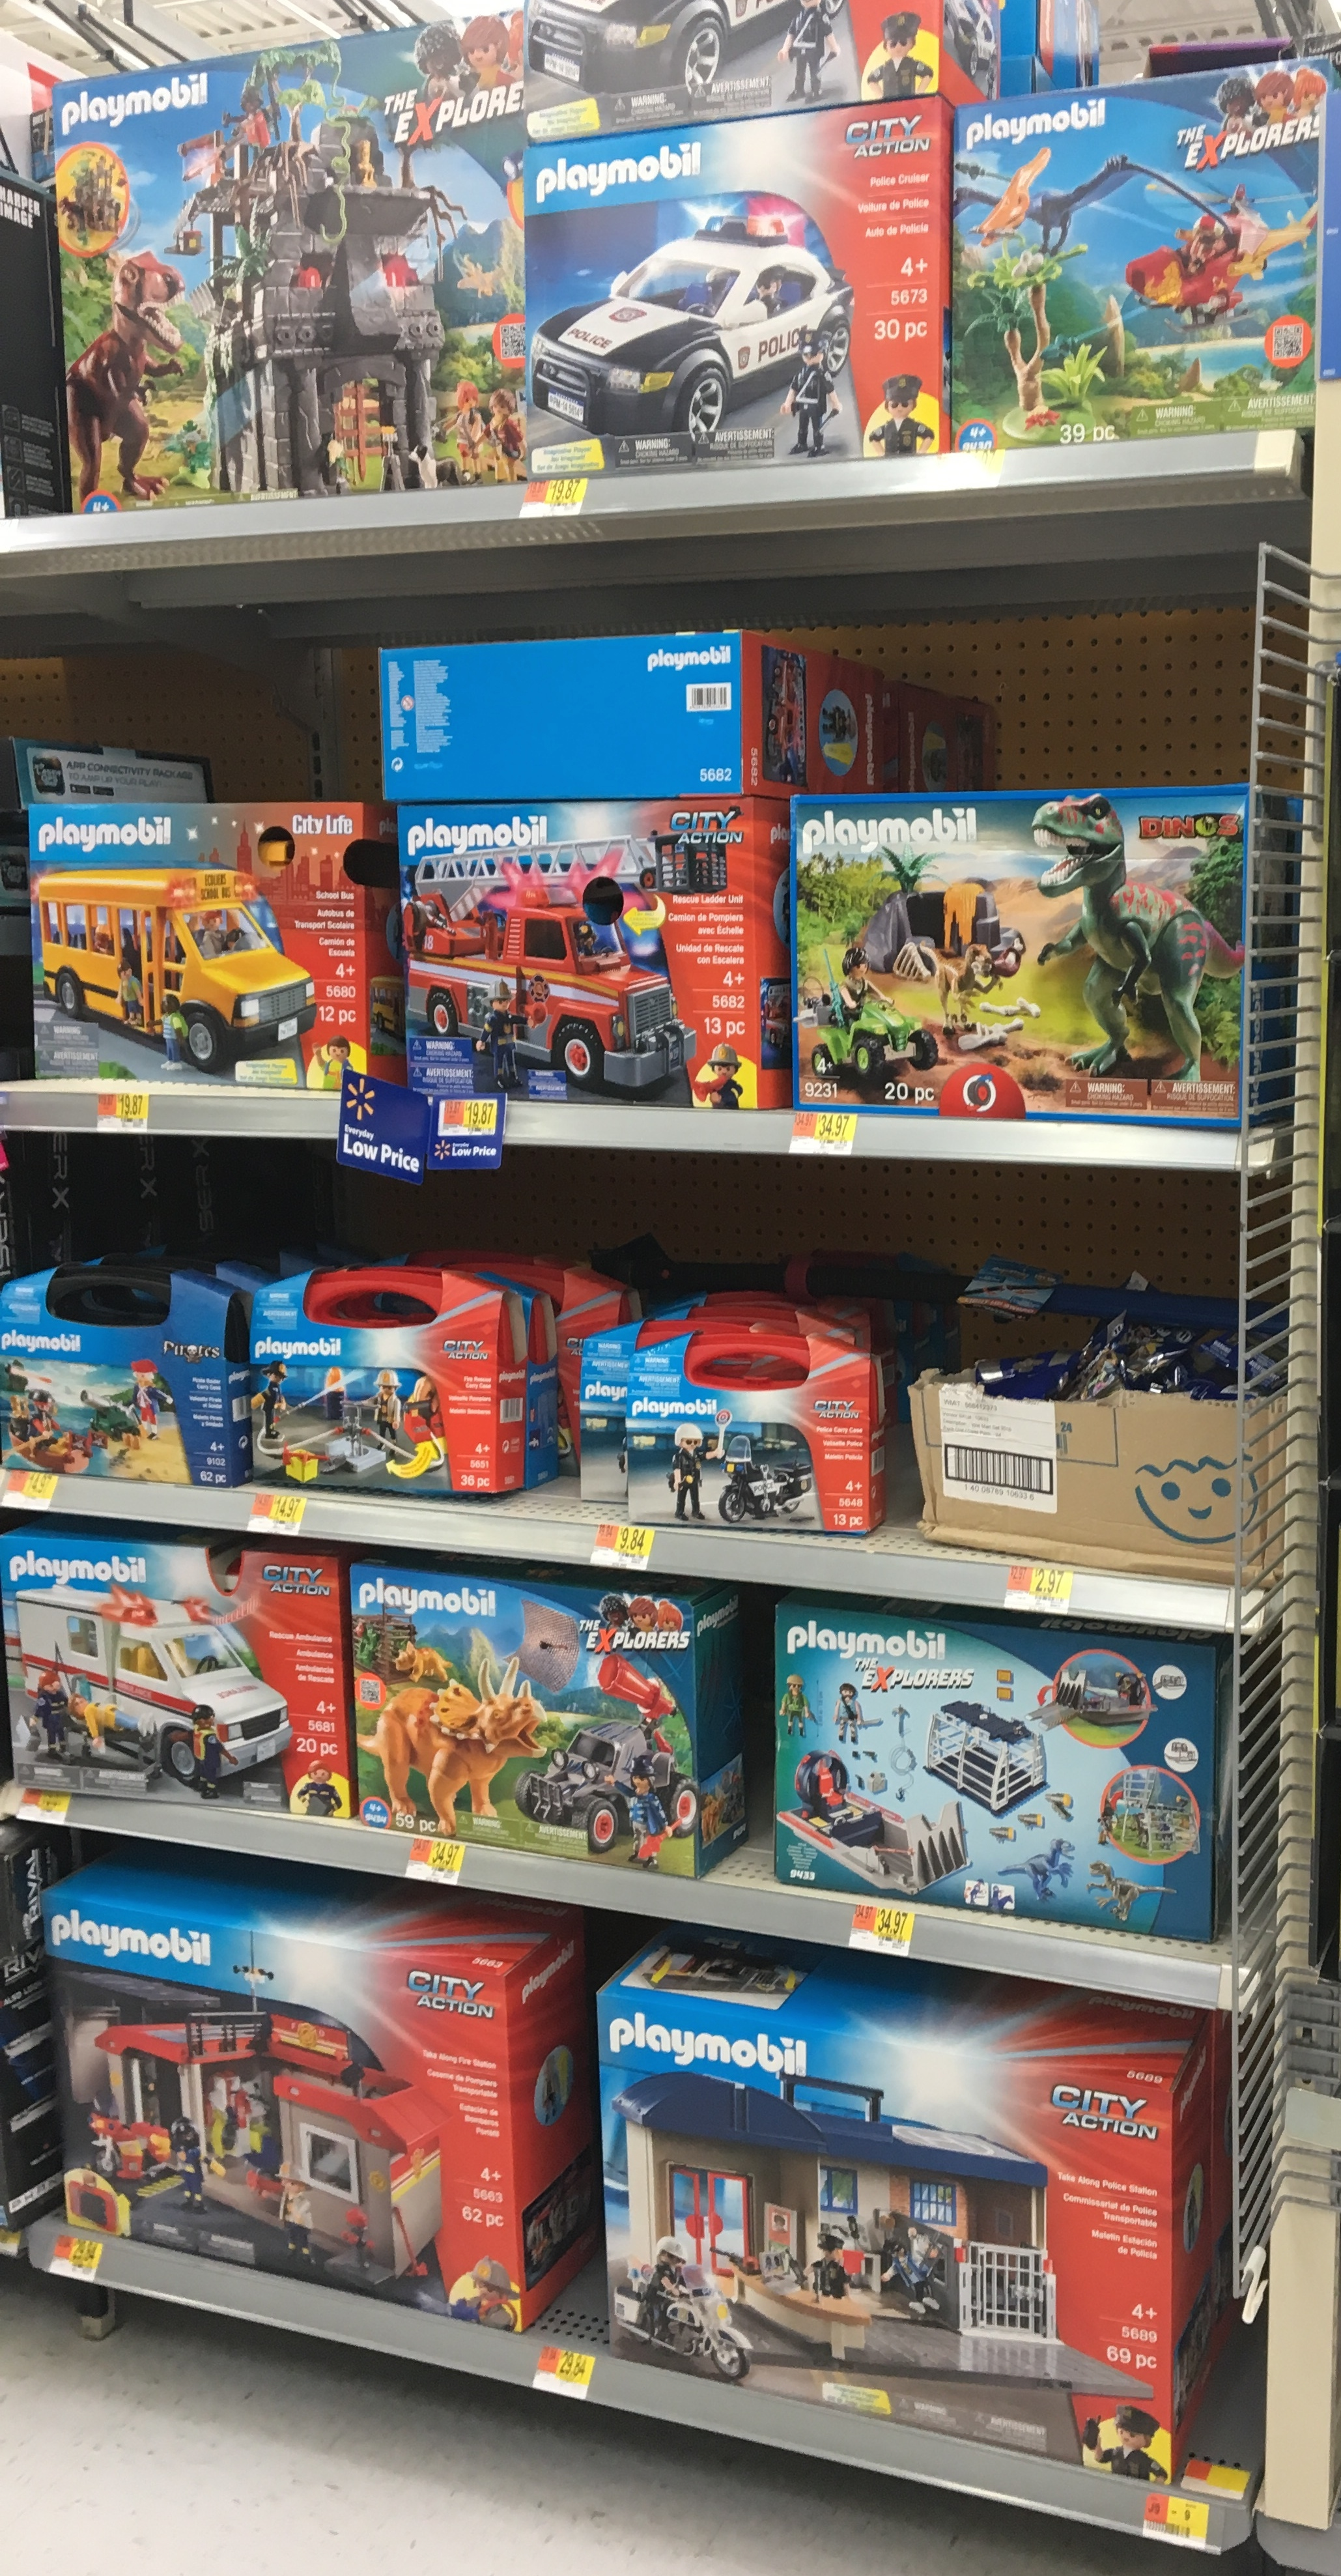 Playmobil now at Walmart stores